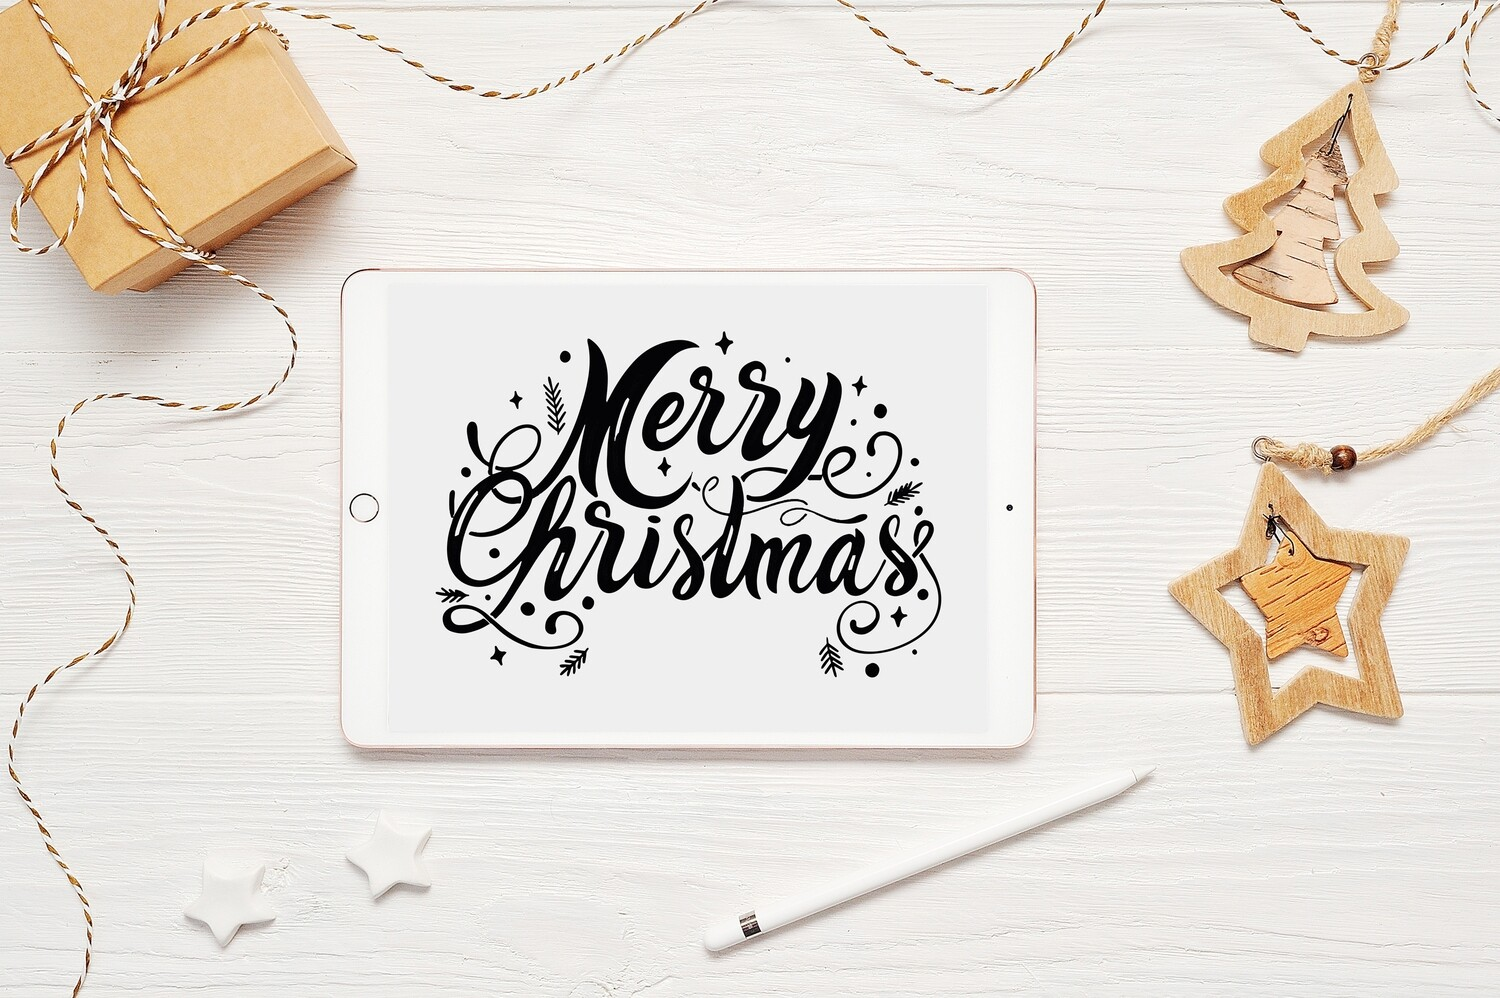 Merry Christmas Flourish Clipart Design - SVG & PNG - Personal and Commercial Use